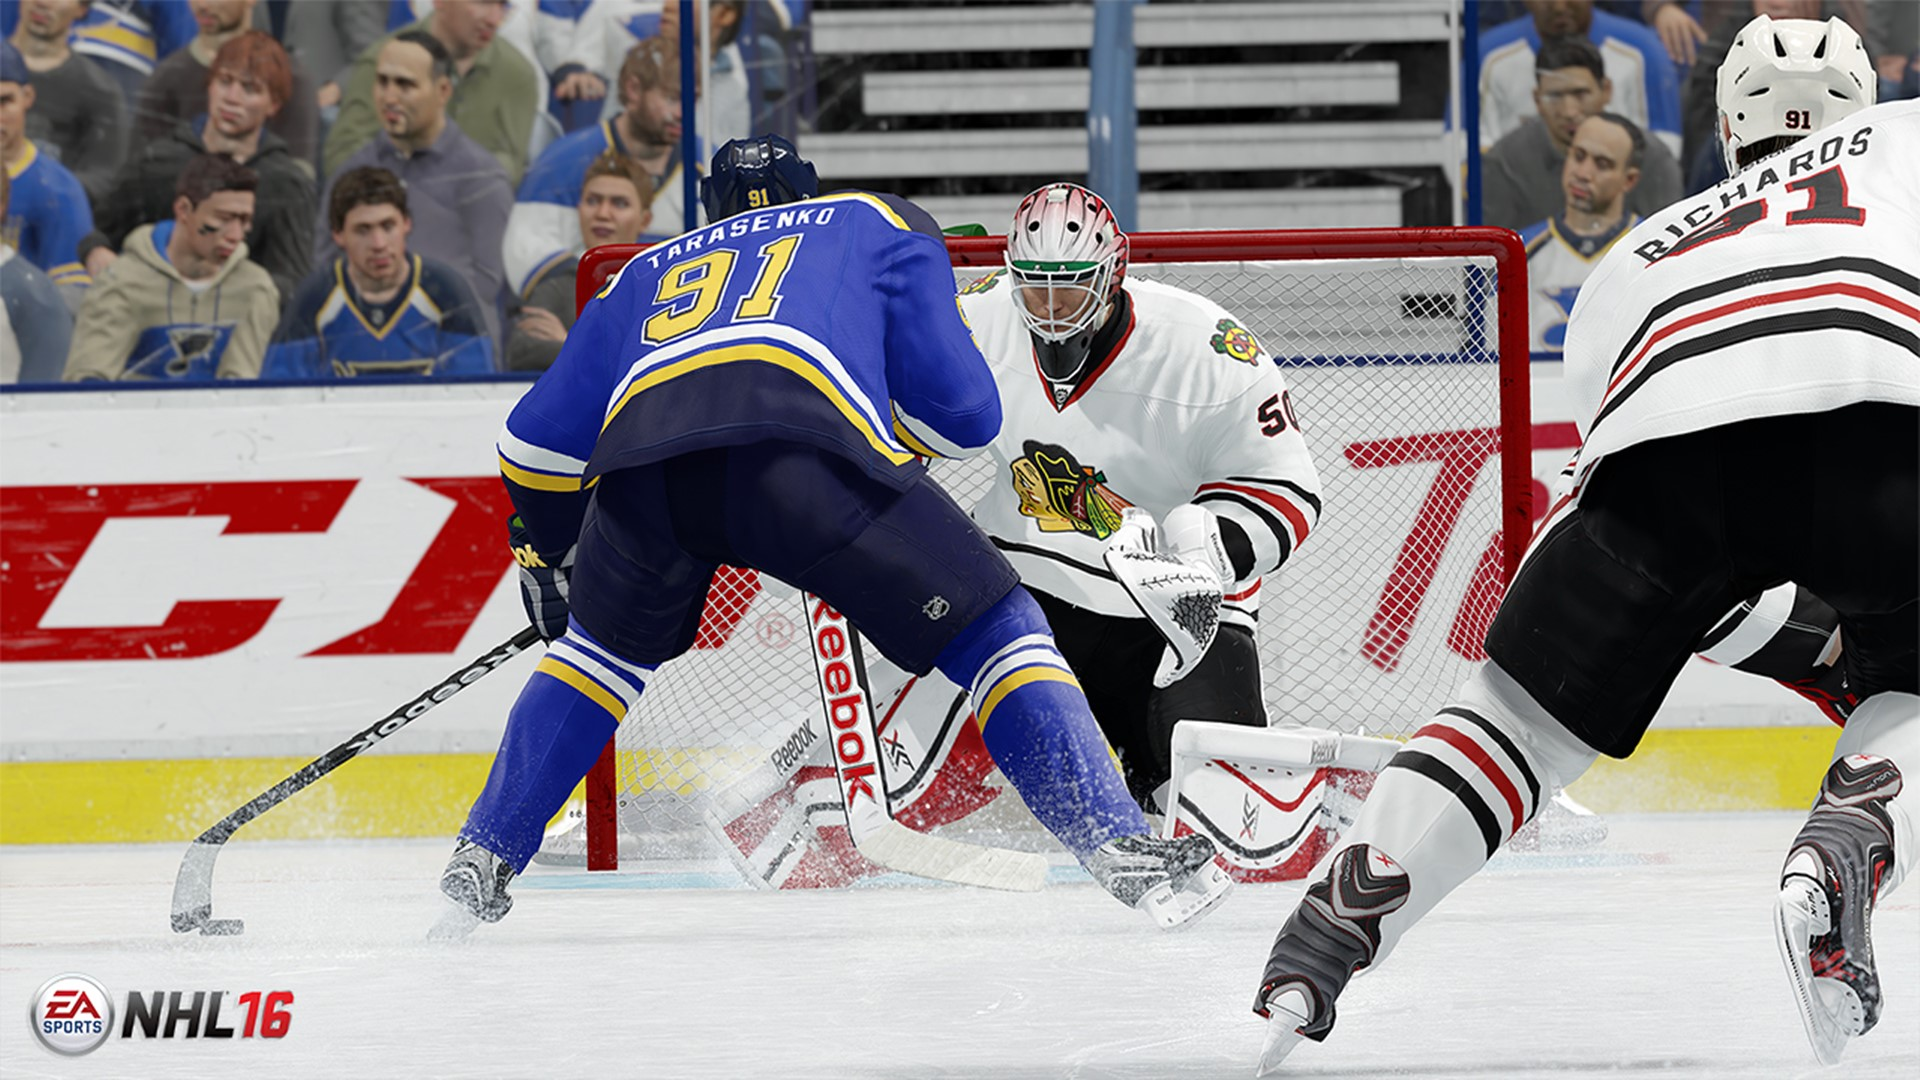 nhl16-stl-chi-tarasenko-deke-2-edit_1280x720